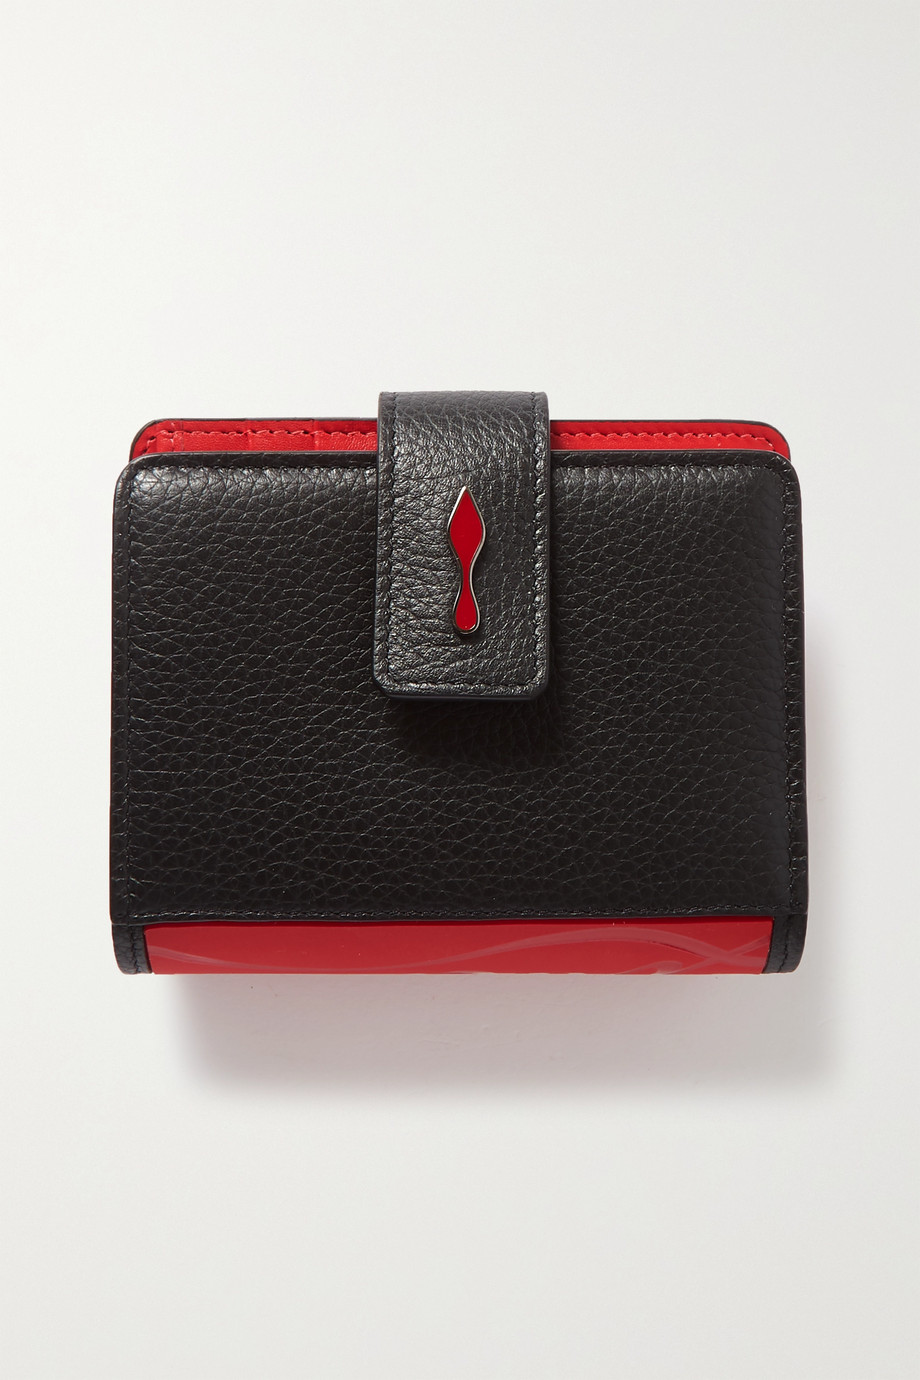 Christian Louboutin Paloma rubber-trimmed textured-leather wallet